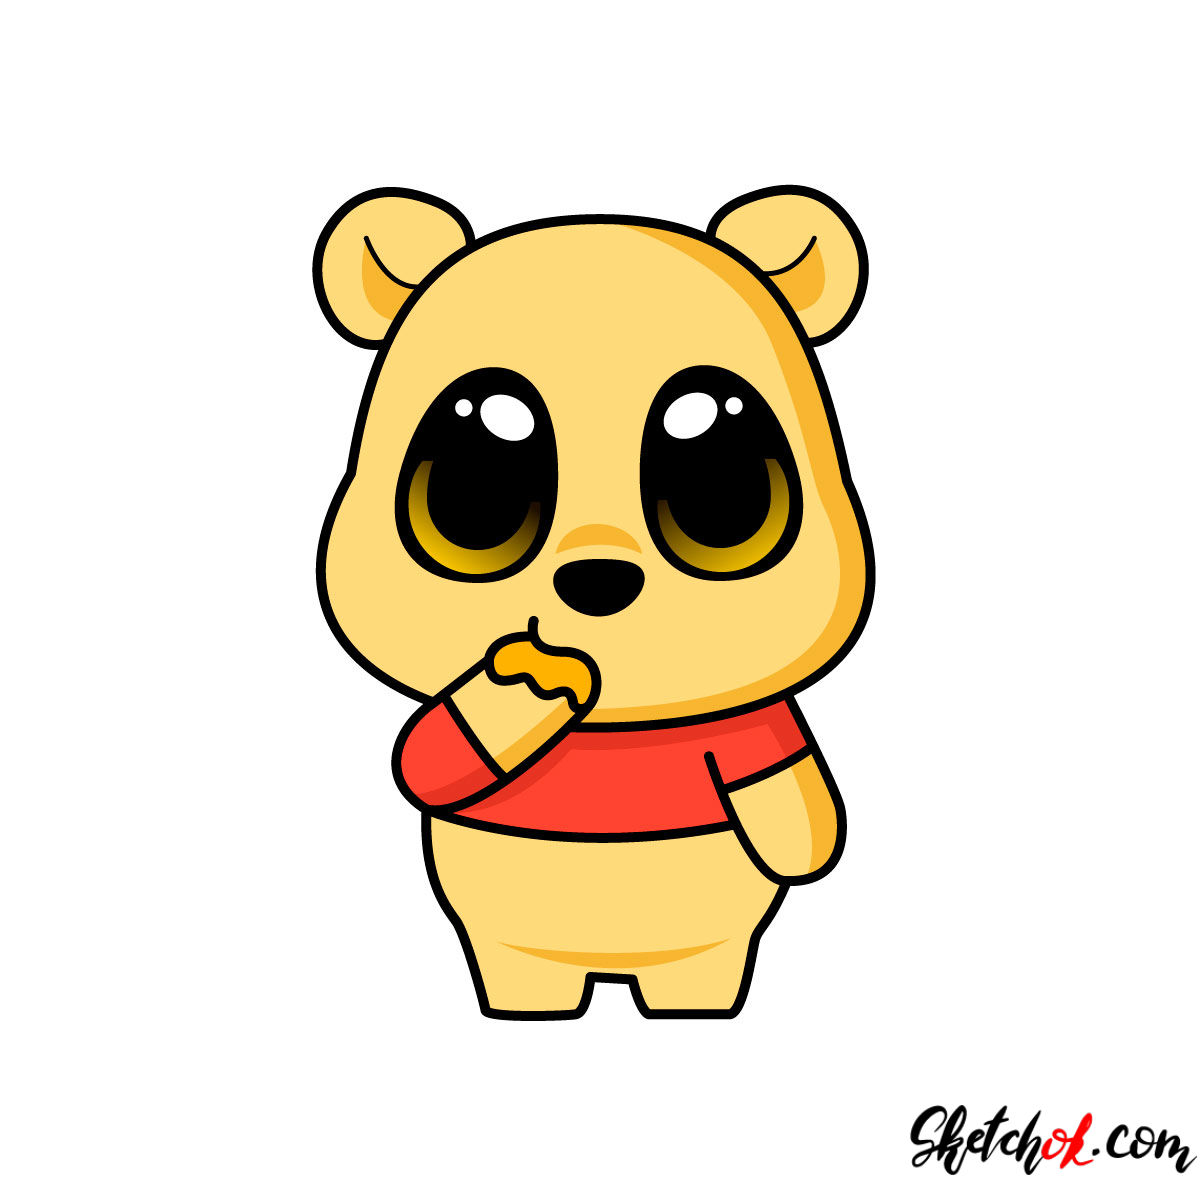 1200x1200 How To Draw Chibi Pooh Bear